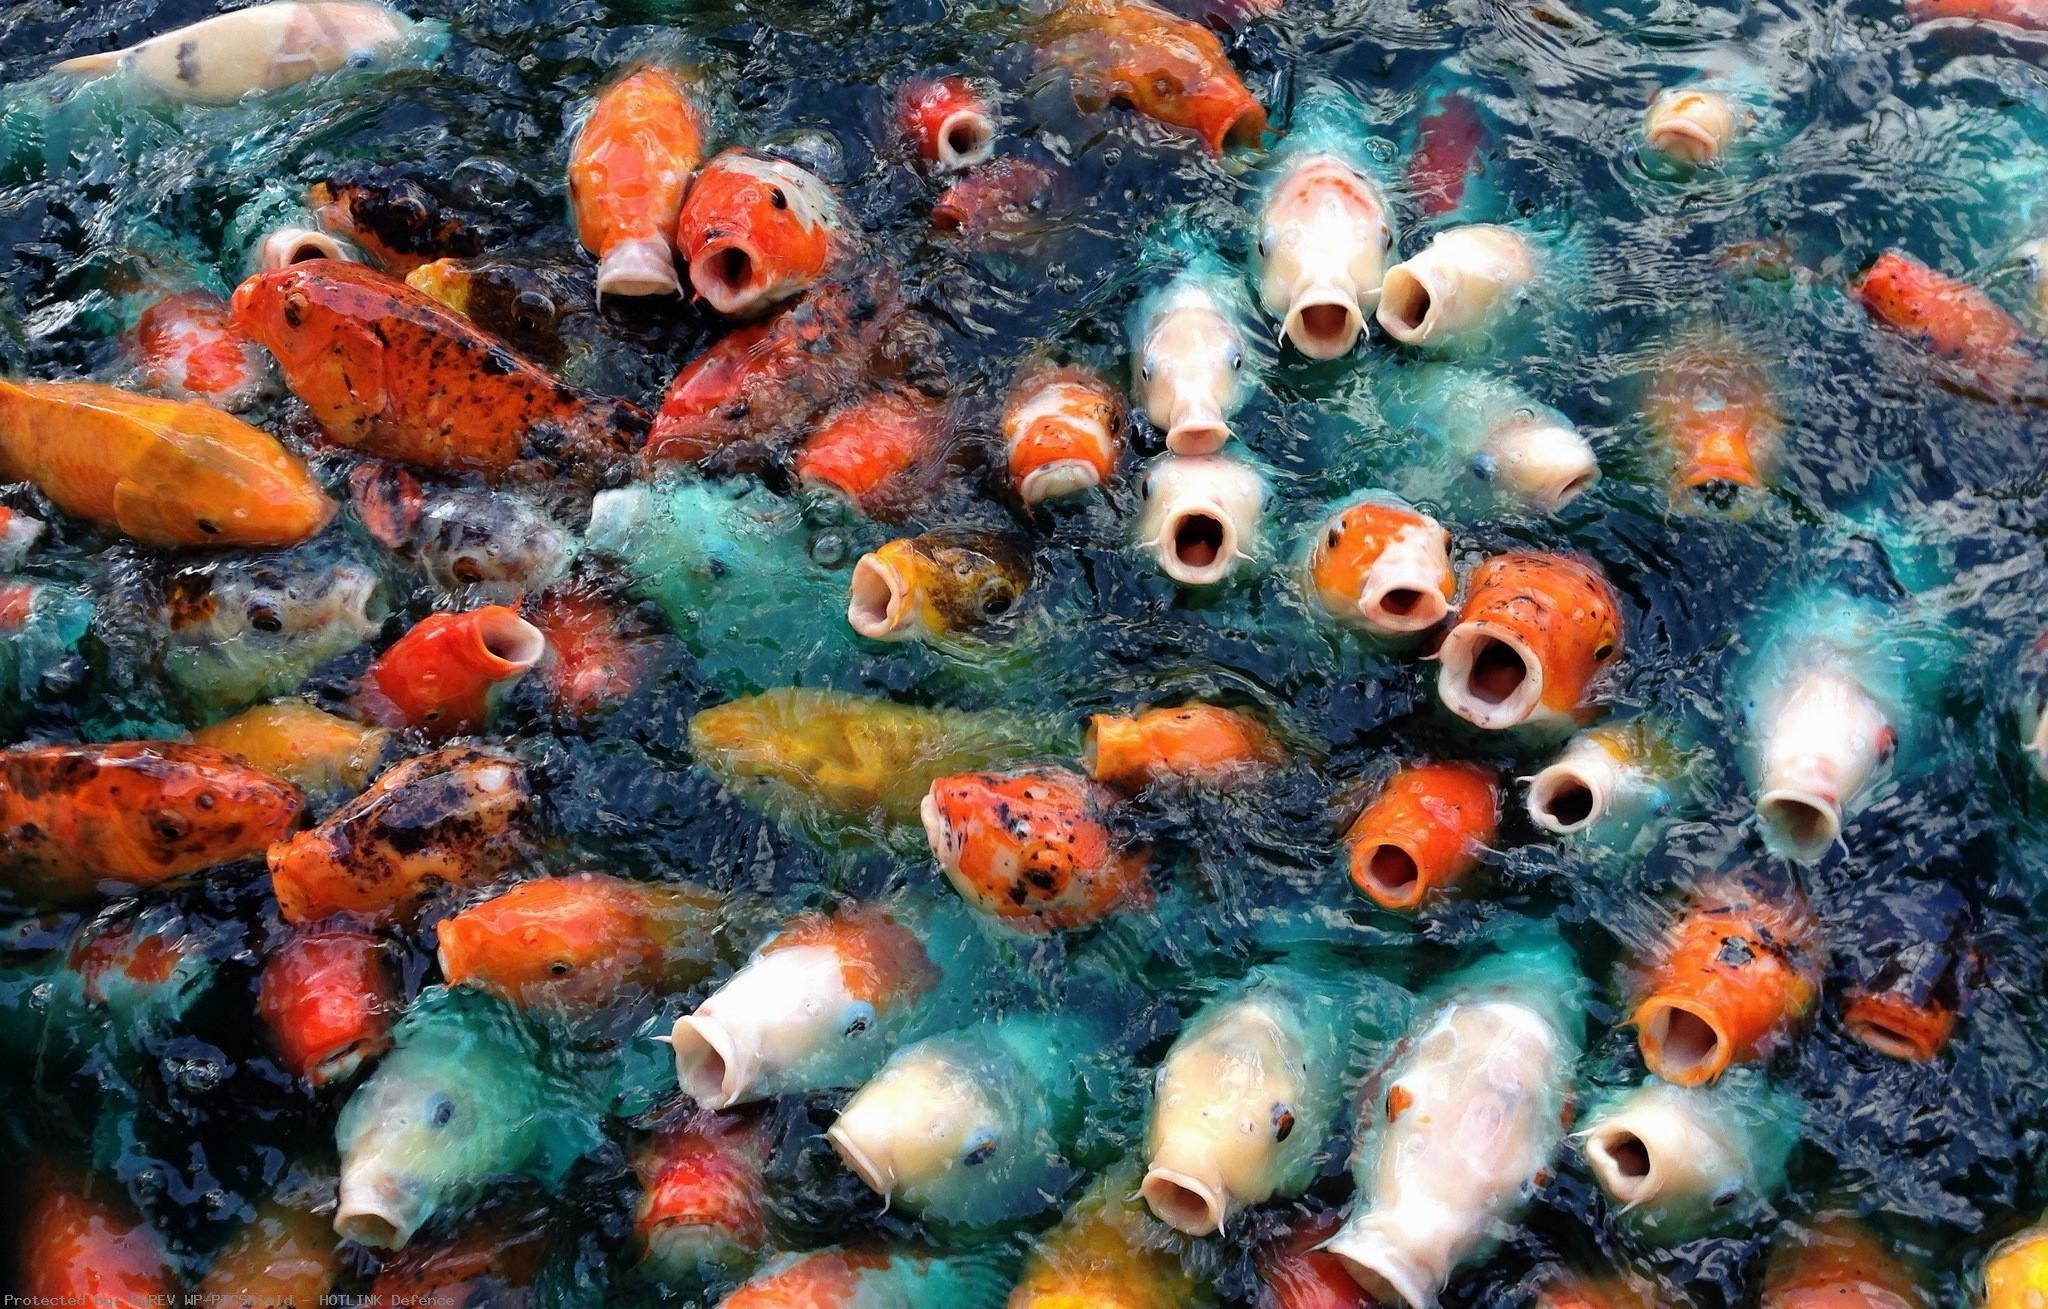 2048x1309 Koi-Fish-Live-for-Android-Free-Downloadcom-wallpaper-